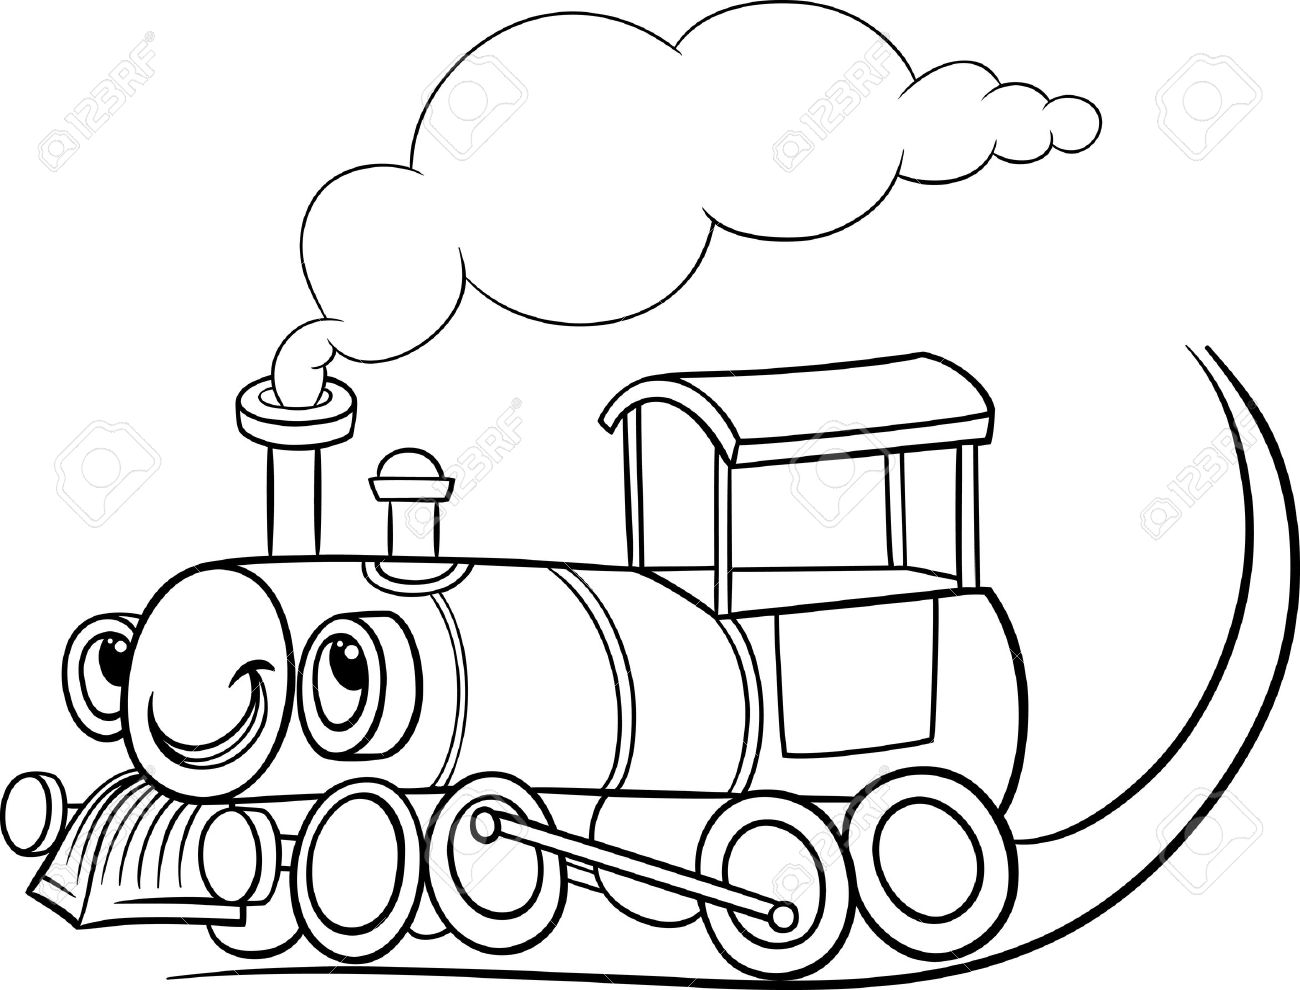 Engine clipart black and white 7 » Clipart Station.